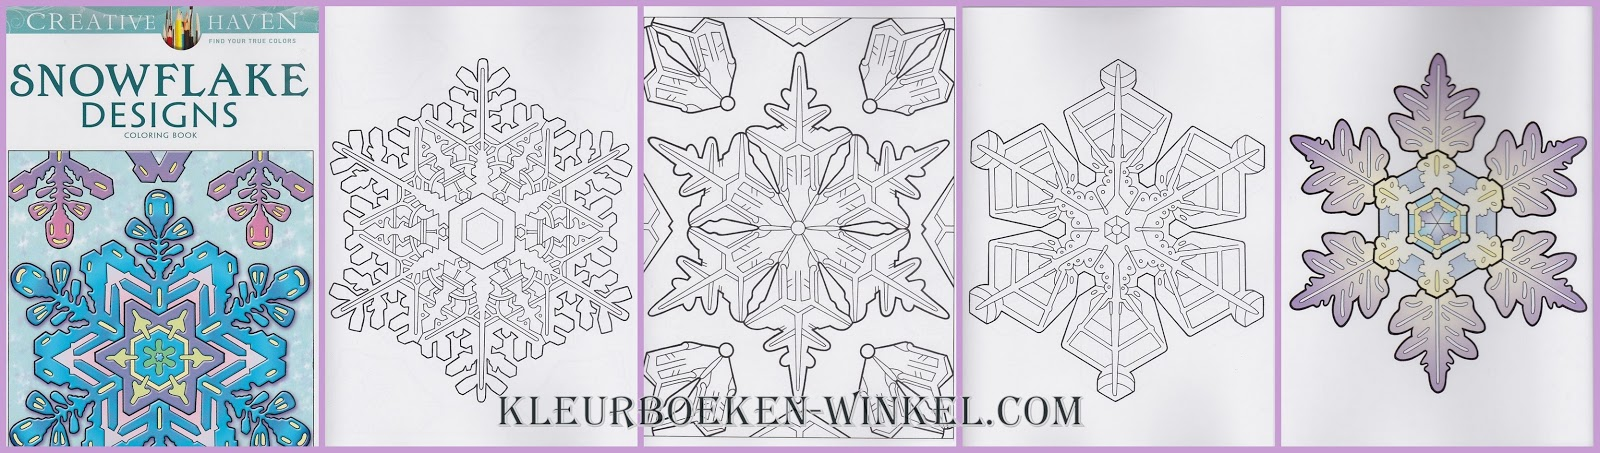 CH 65 snowflake designs, kleurboek Creative Haven, kerst en winter